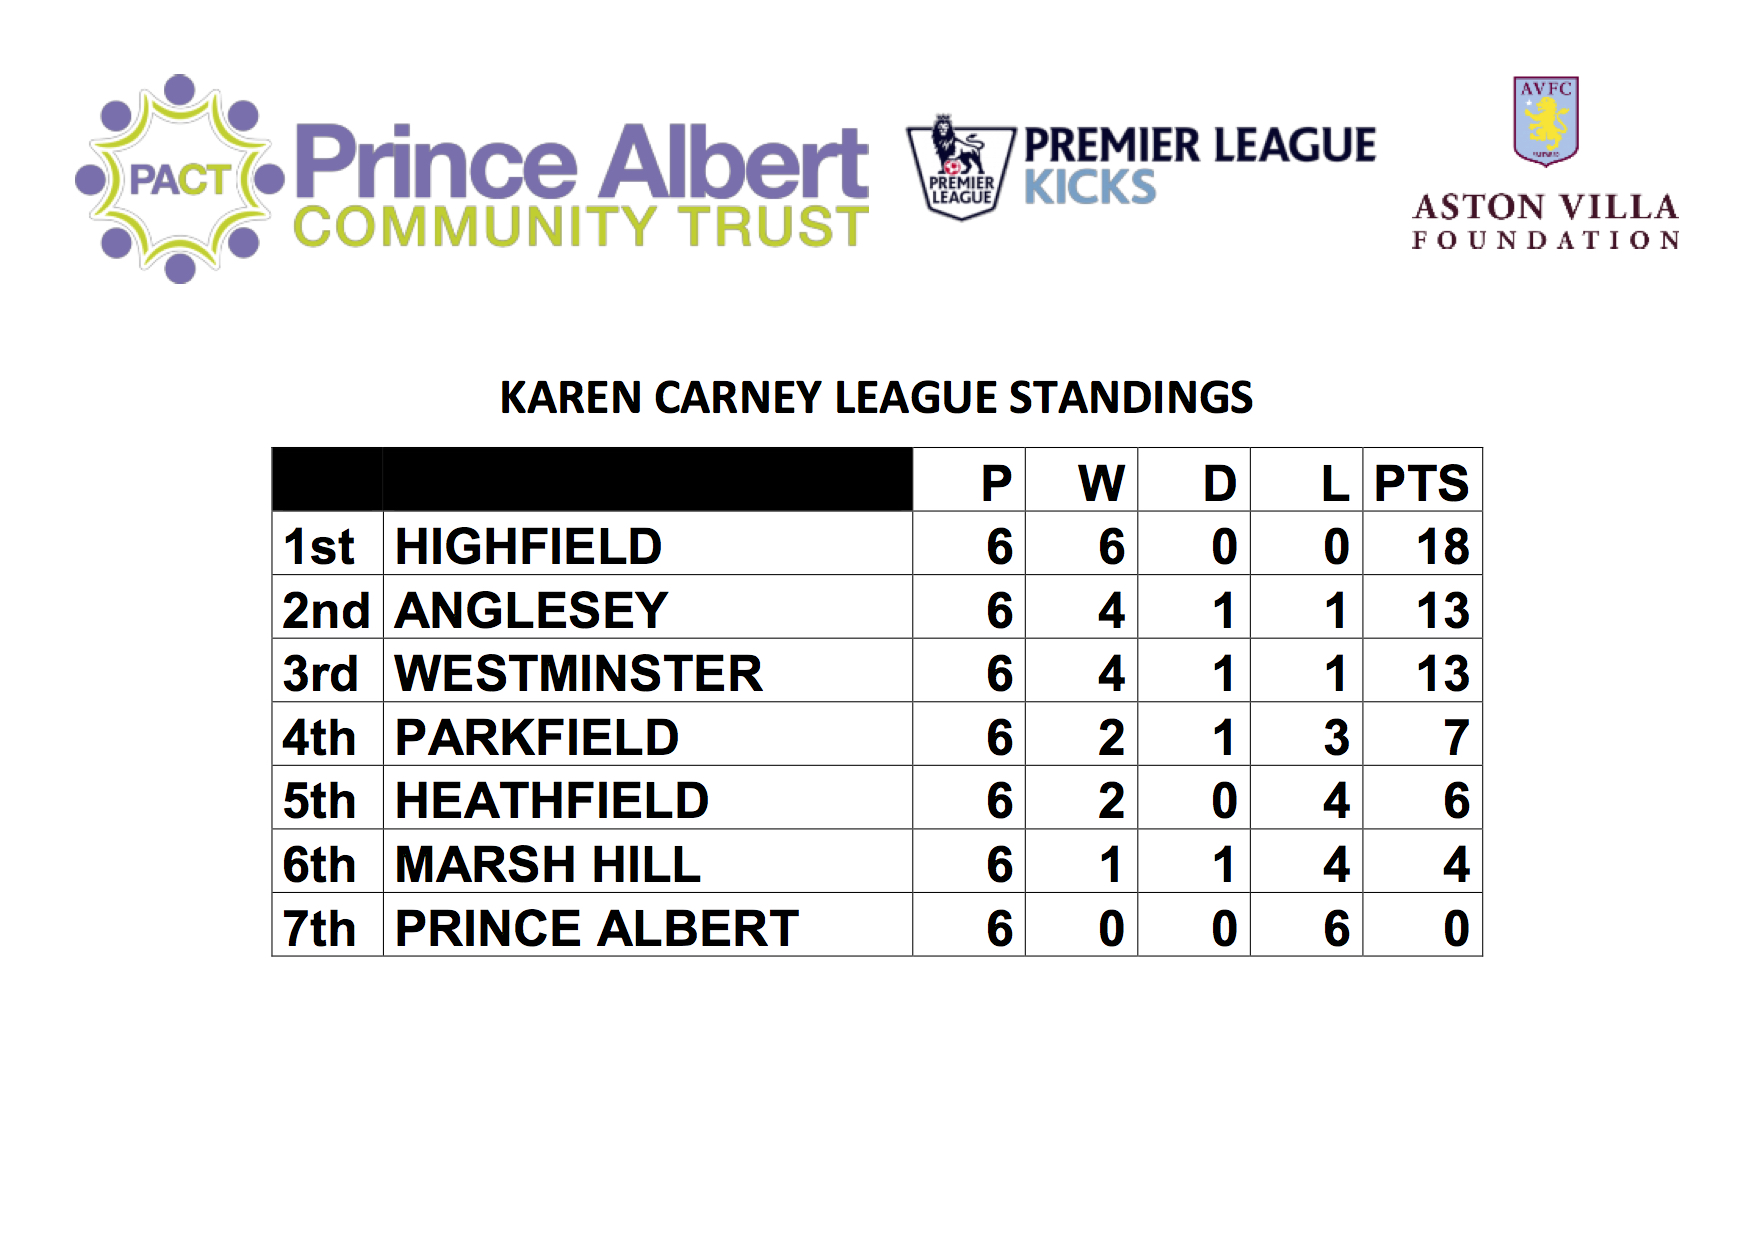 KAREN CARNEY League Standings